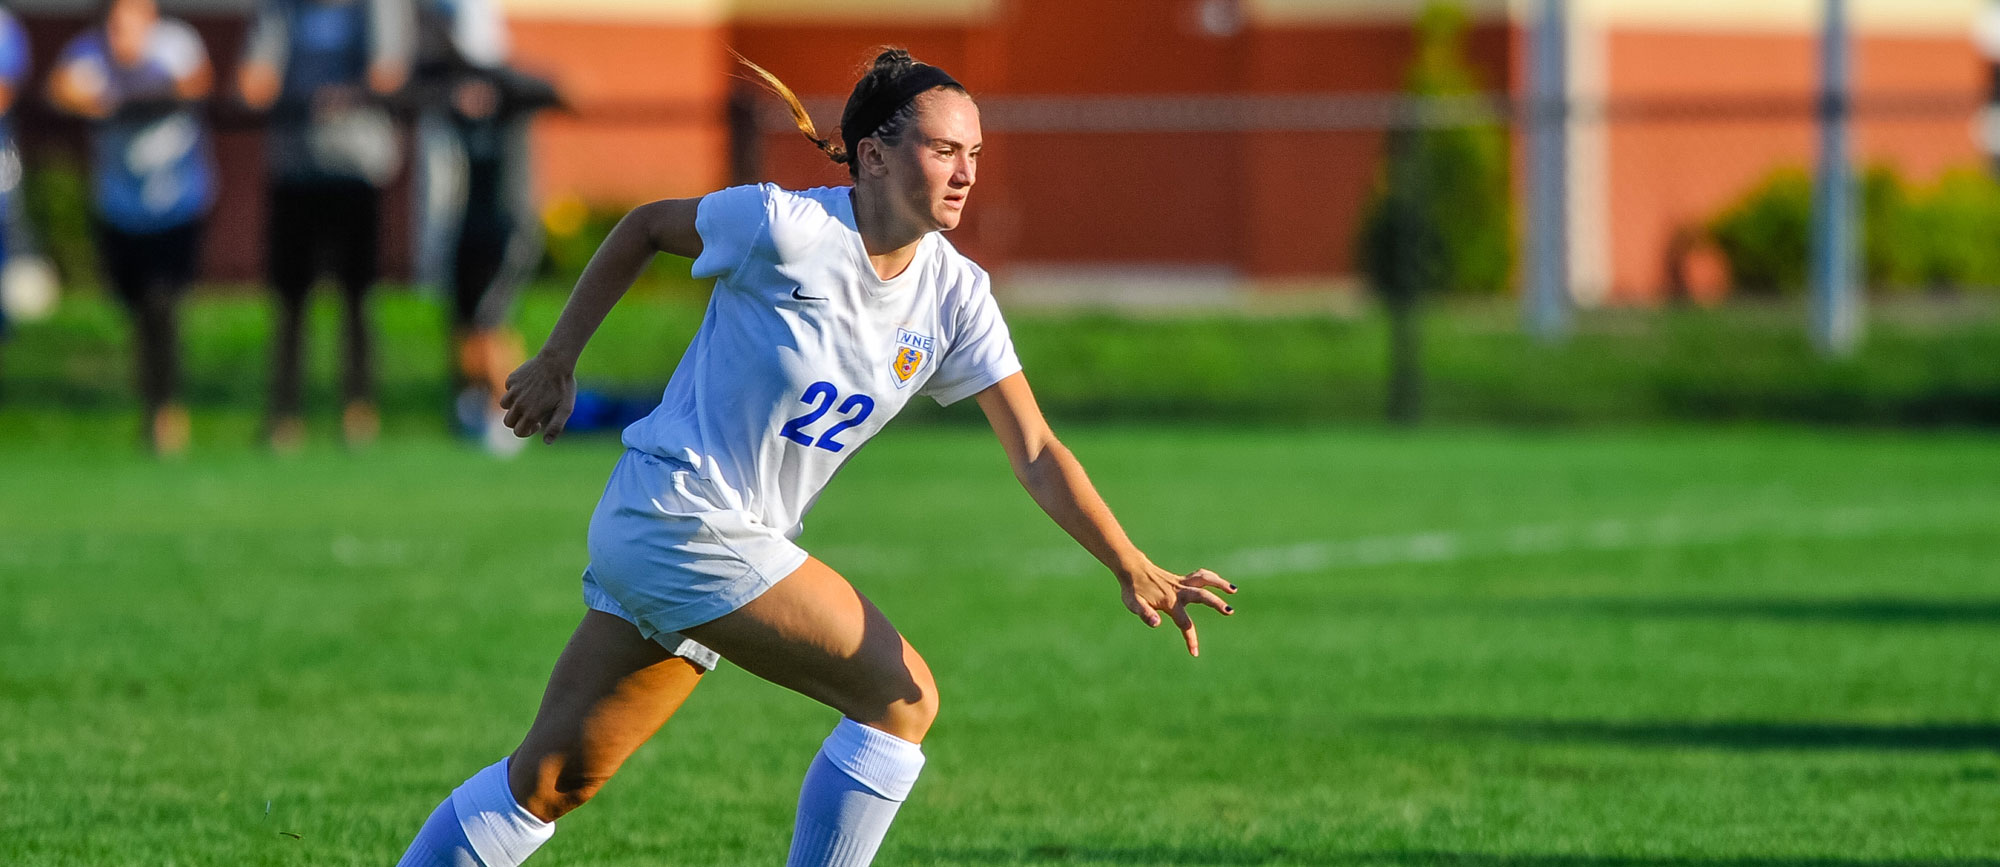 First Half Goal Lifts Springfield to 1-0 Win Over Western New England